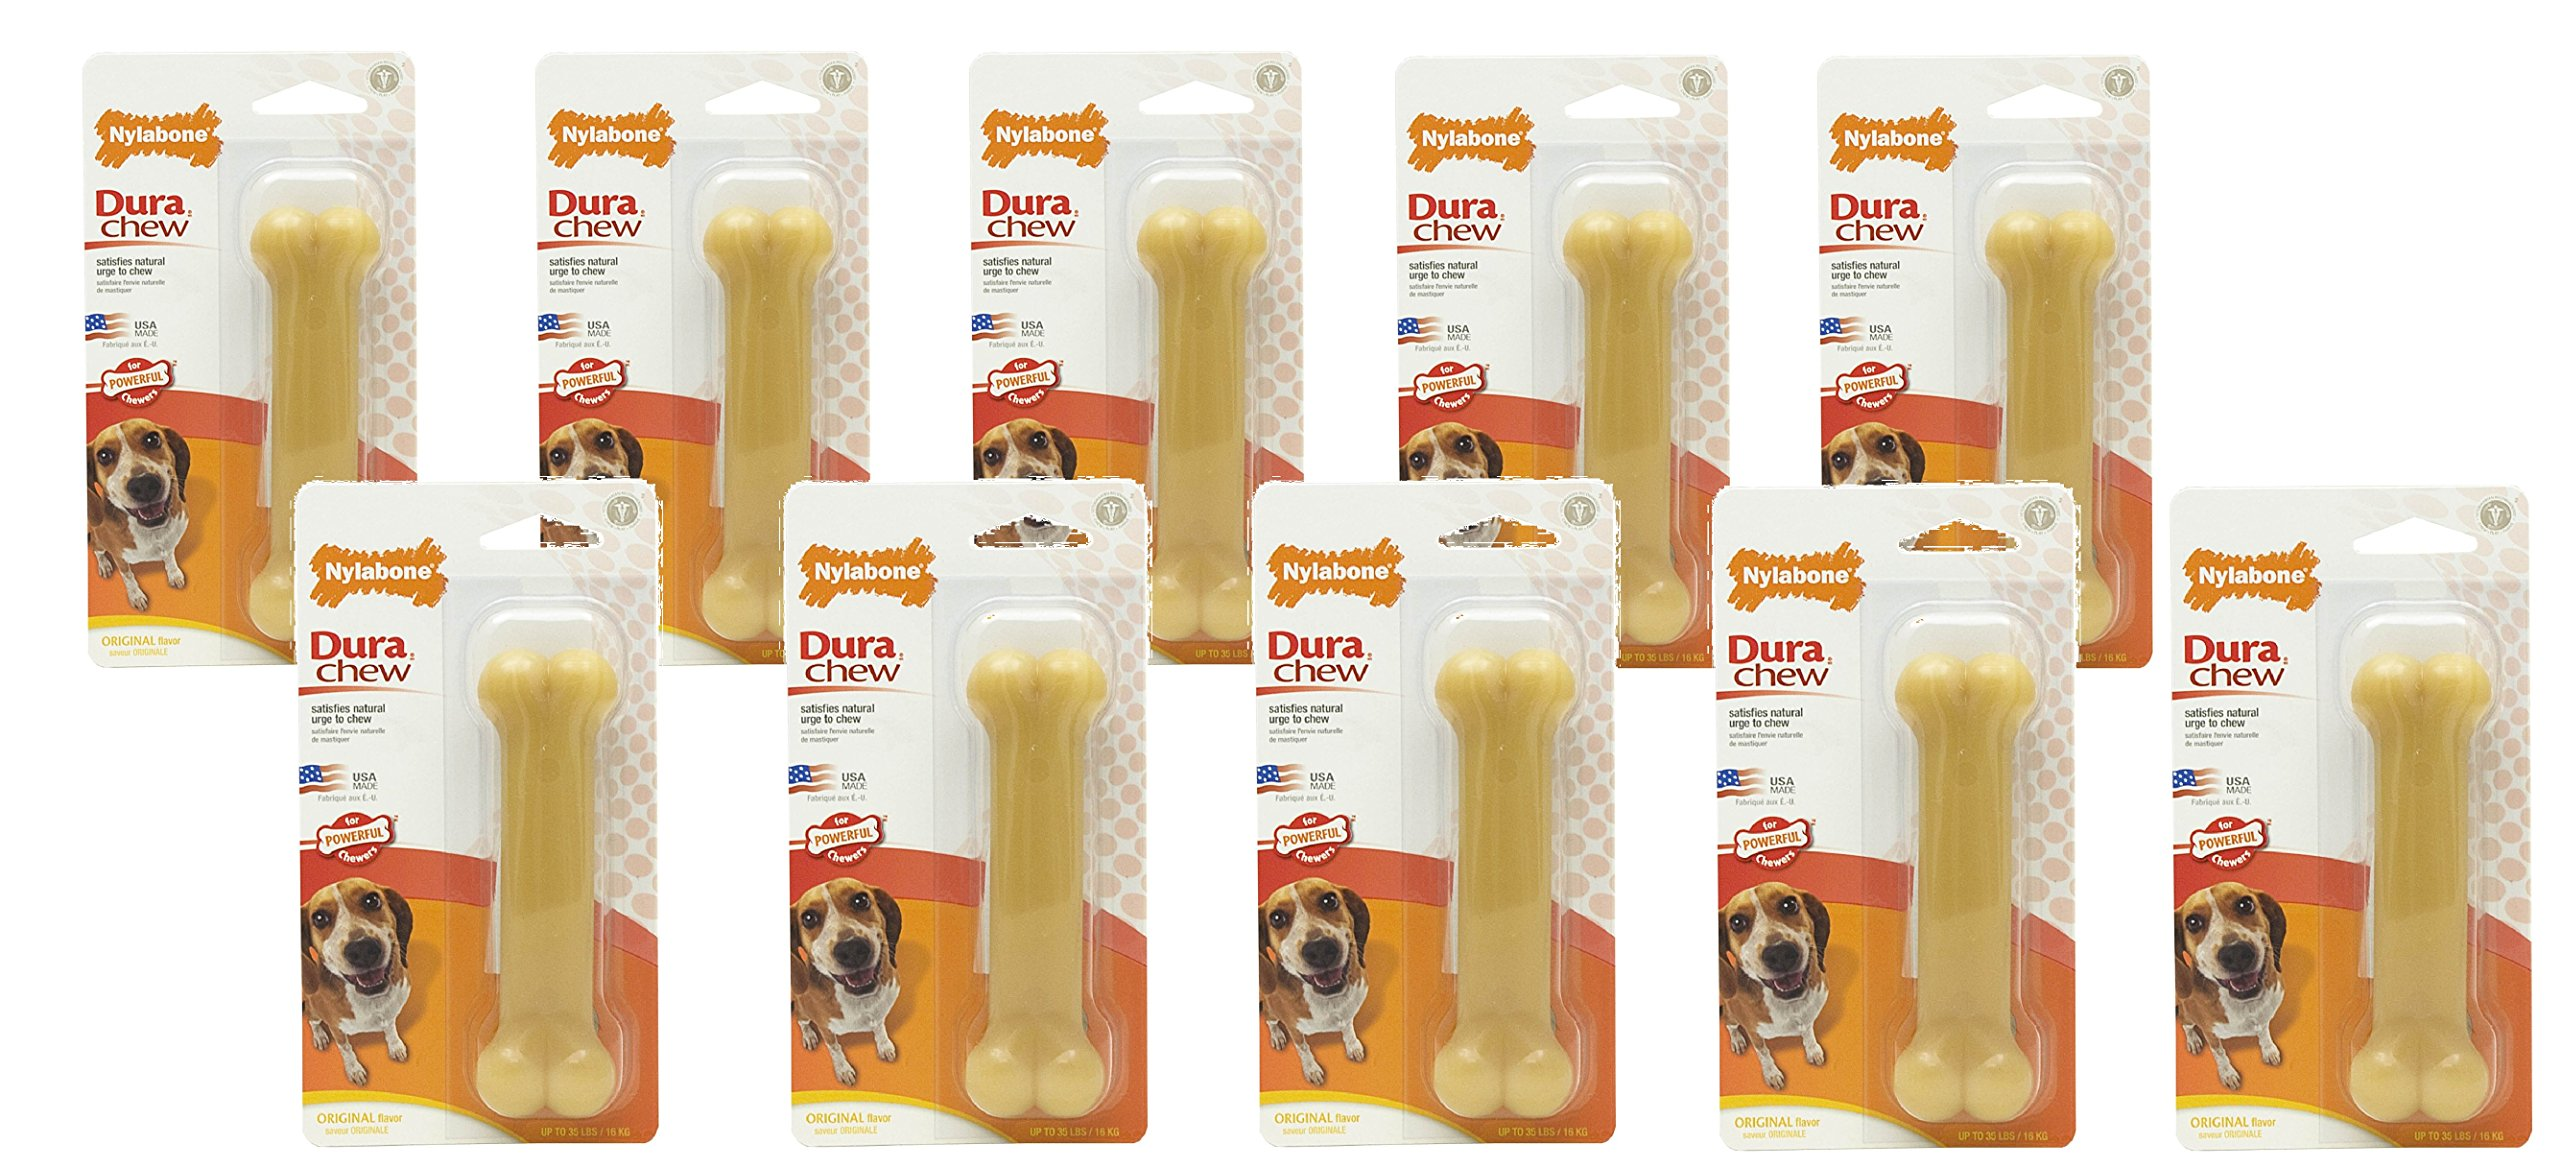 (10 Pack) Nylabone Dura Chew Original Flavored Bone Dog Chew Toy- Wolf/Medium